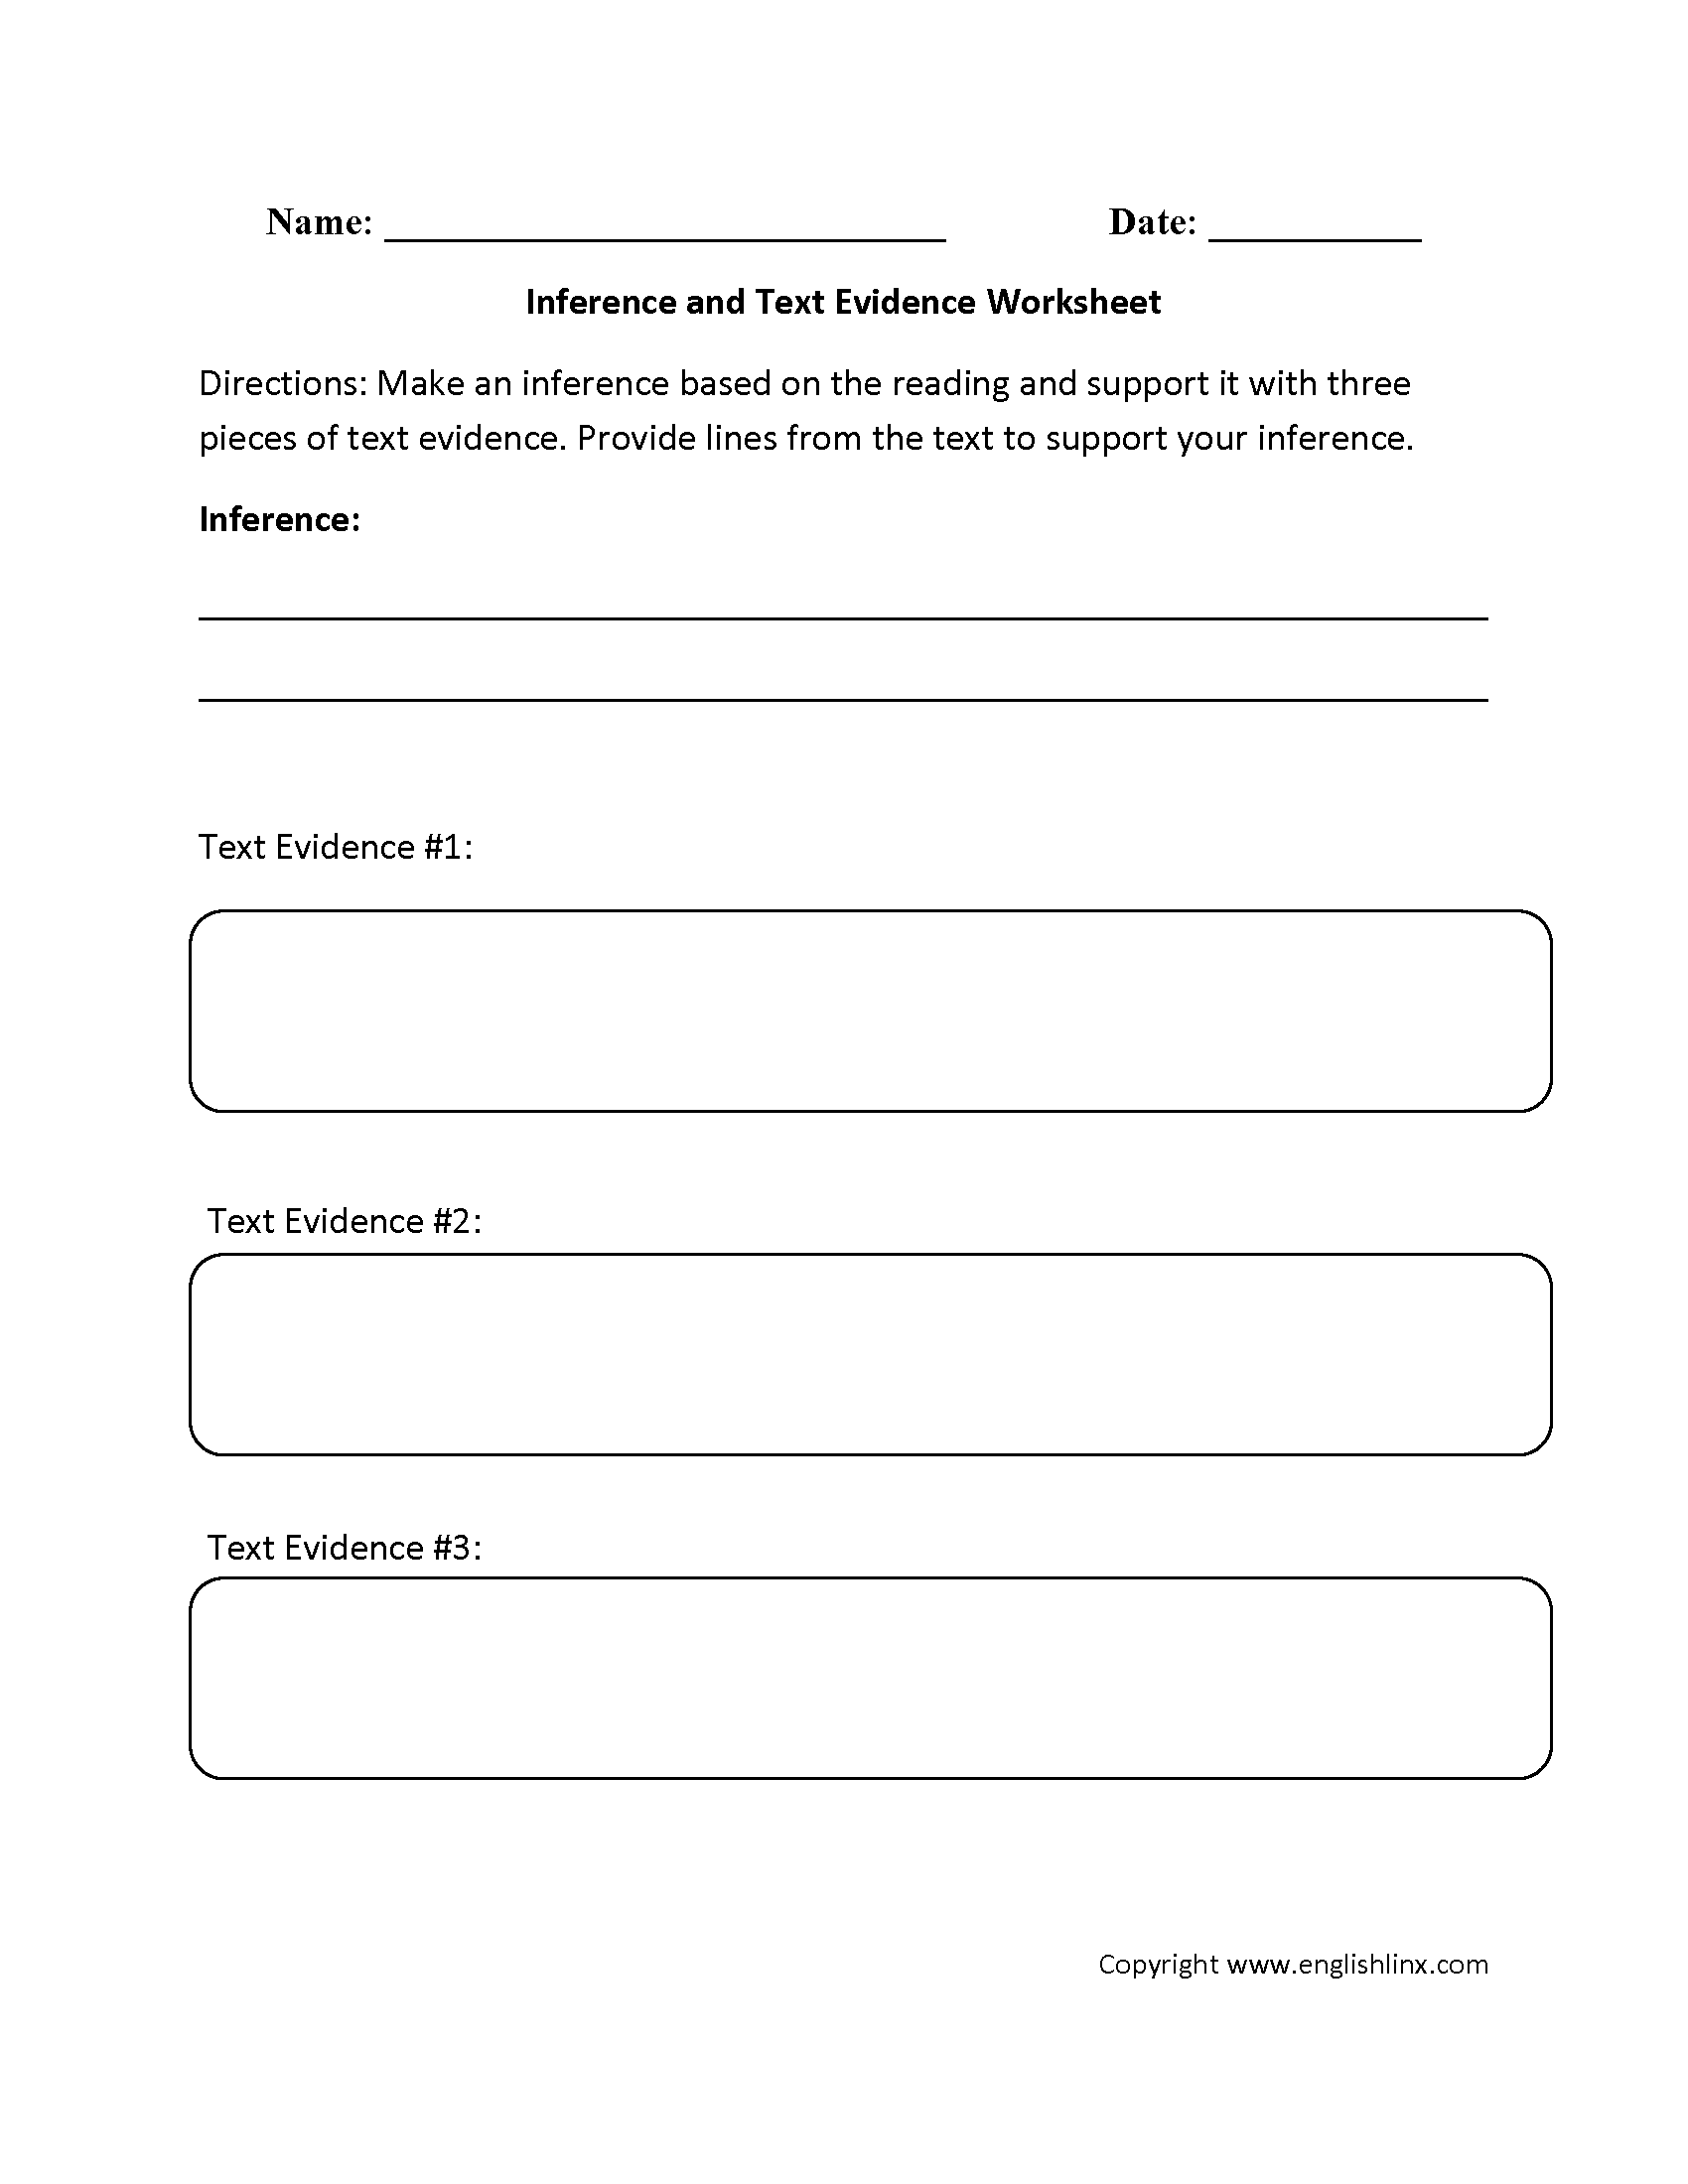 Free Worksheet Inference Worksheets 4th Grade text evidence worksheets inference worksheets